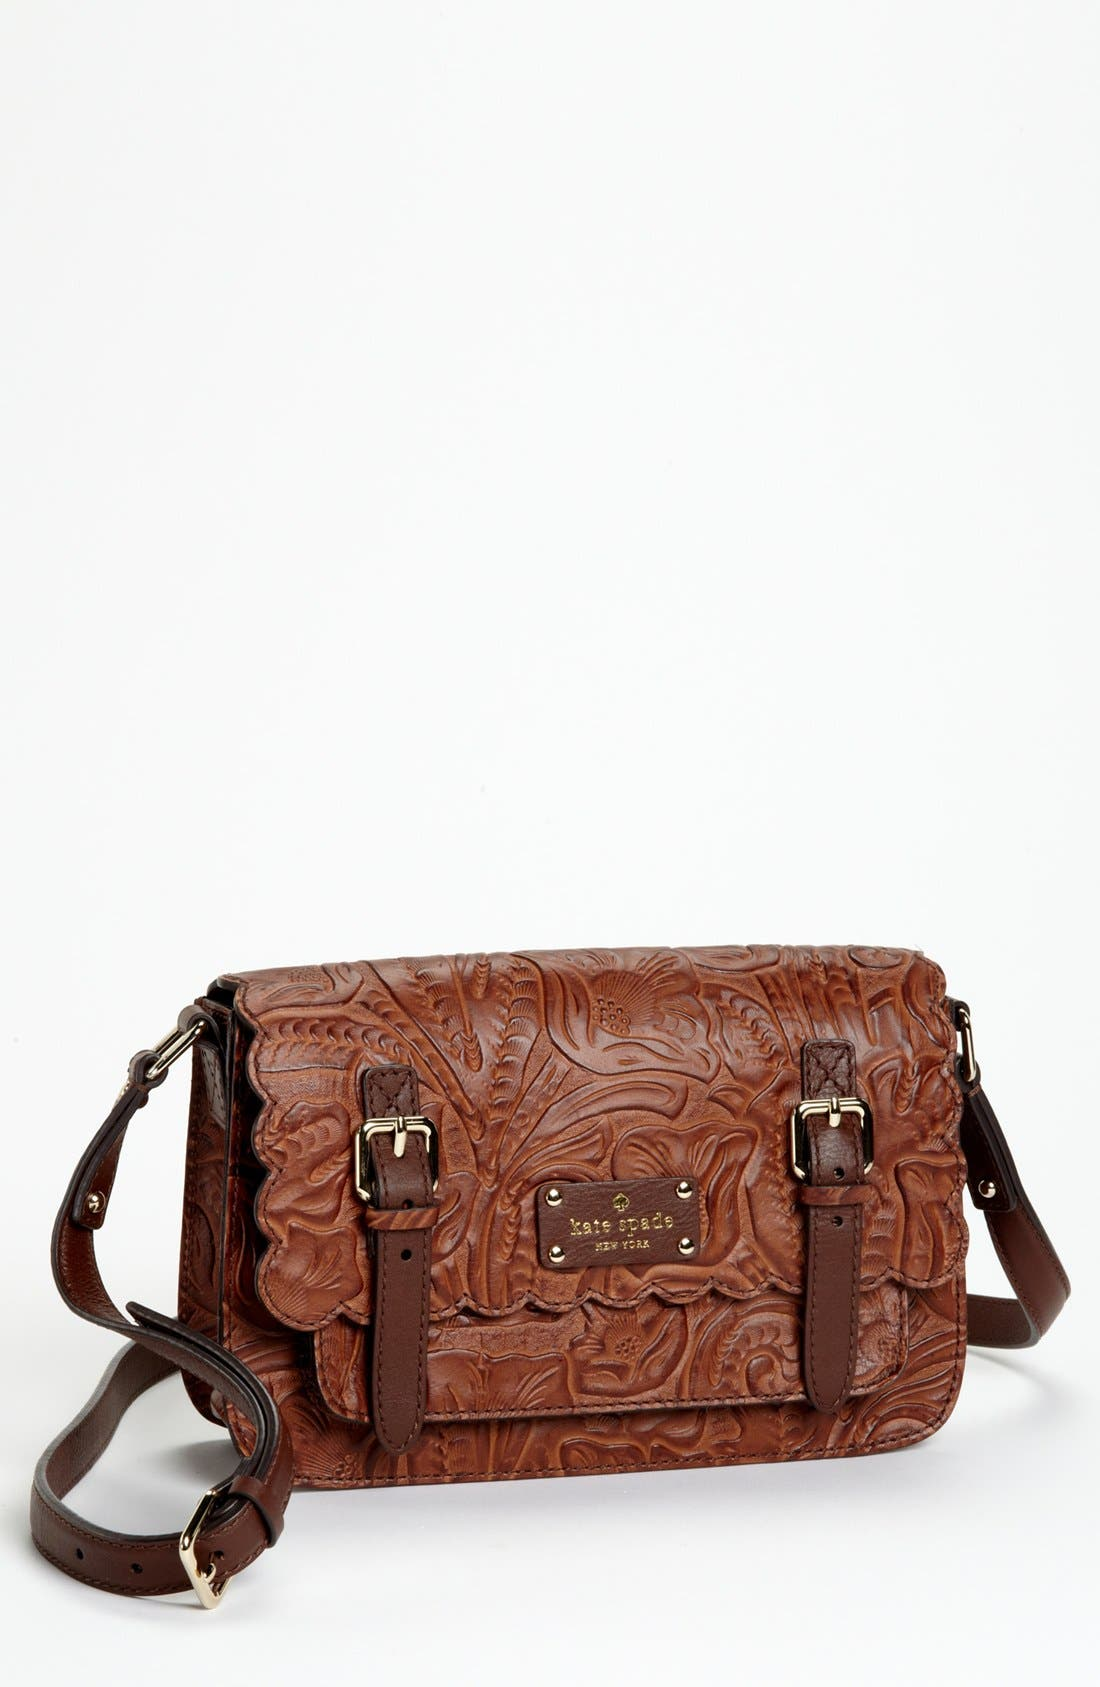 Alternate Image 1 Selected - kate spade new york 'santa rosalia - scout' leather crossbody bag